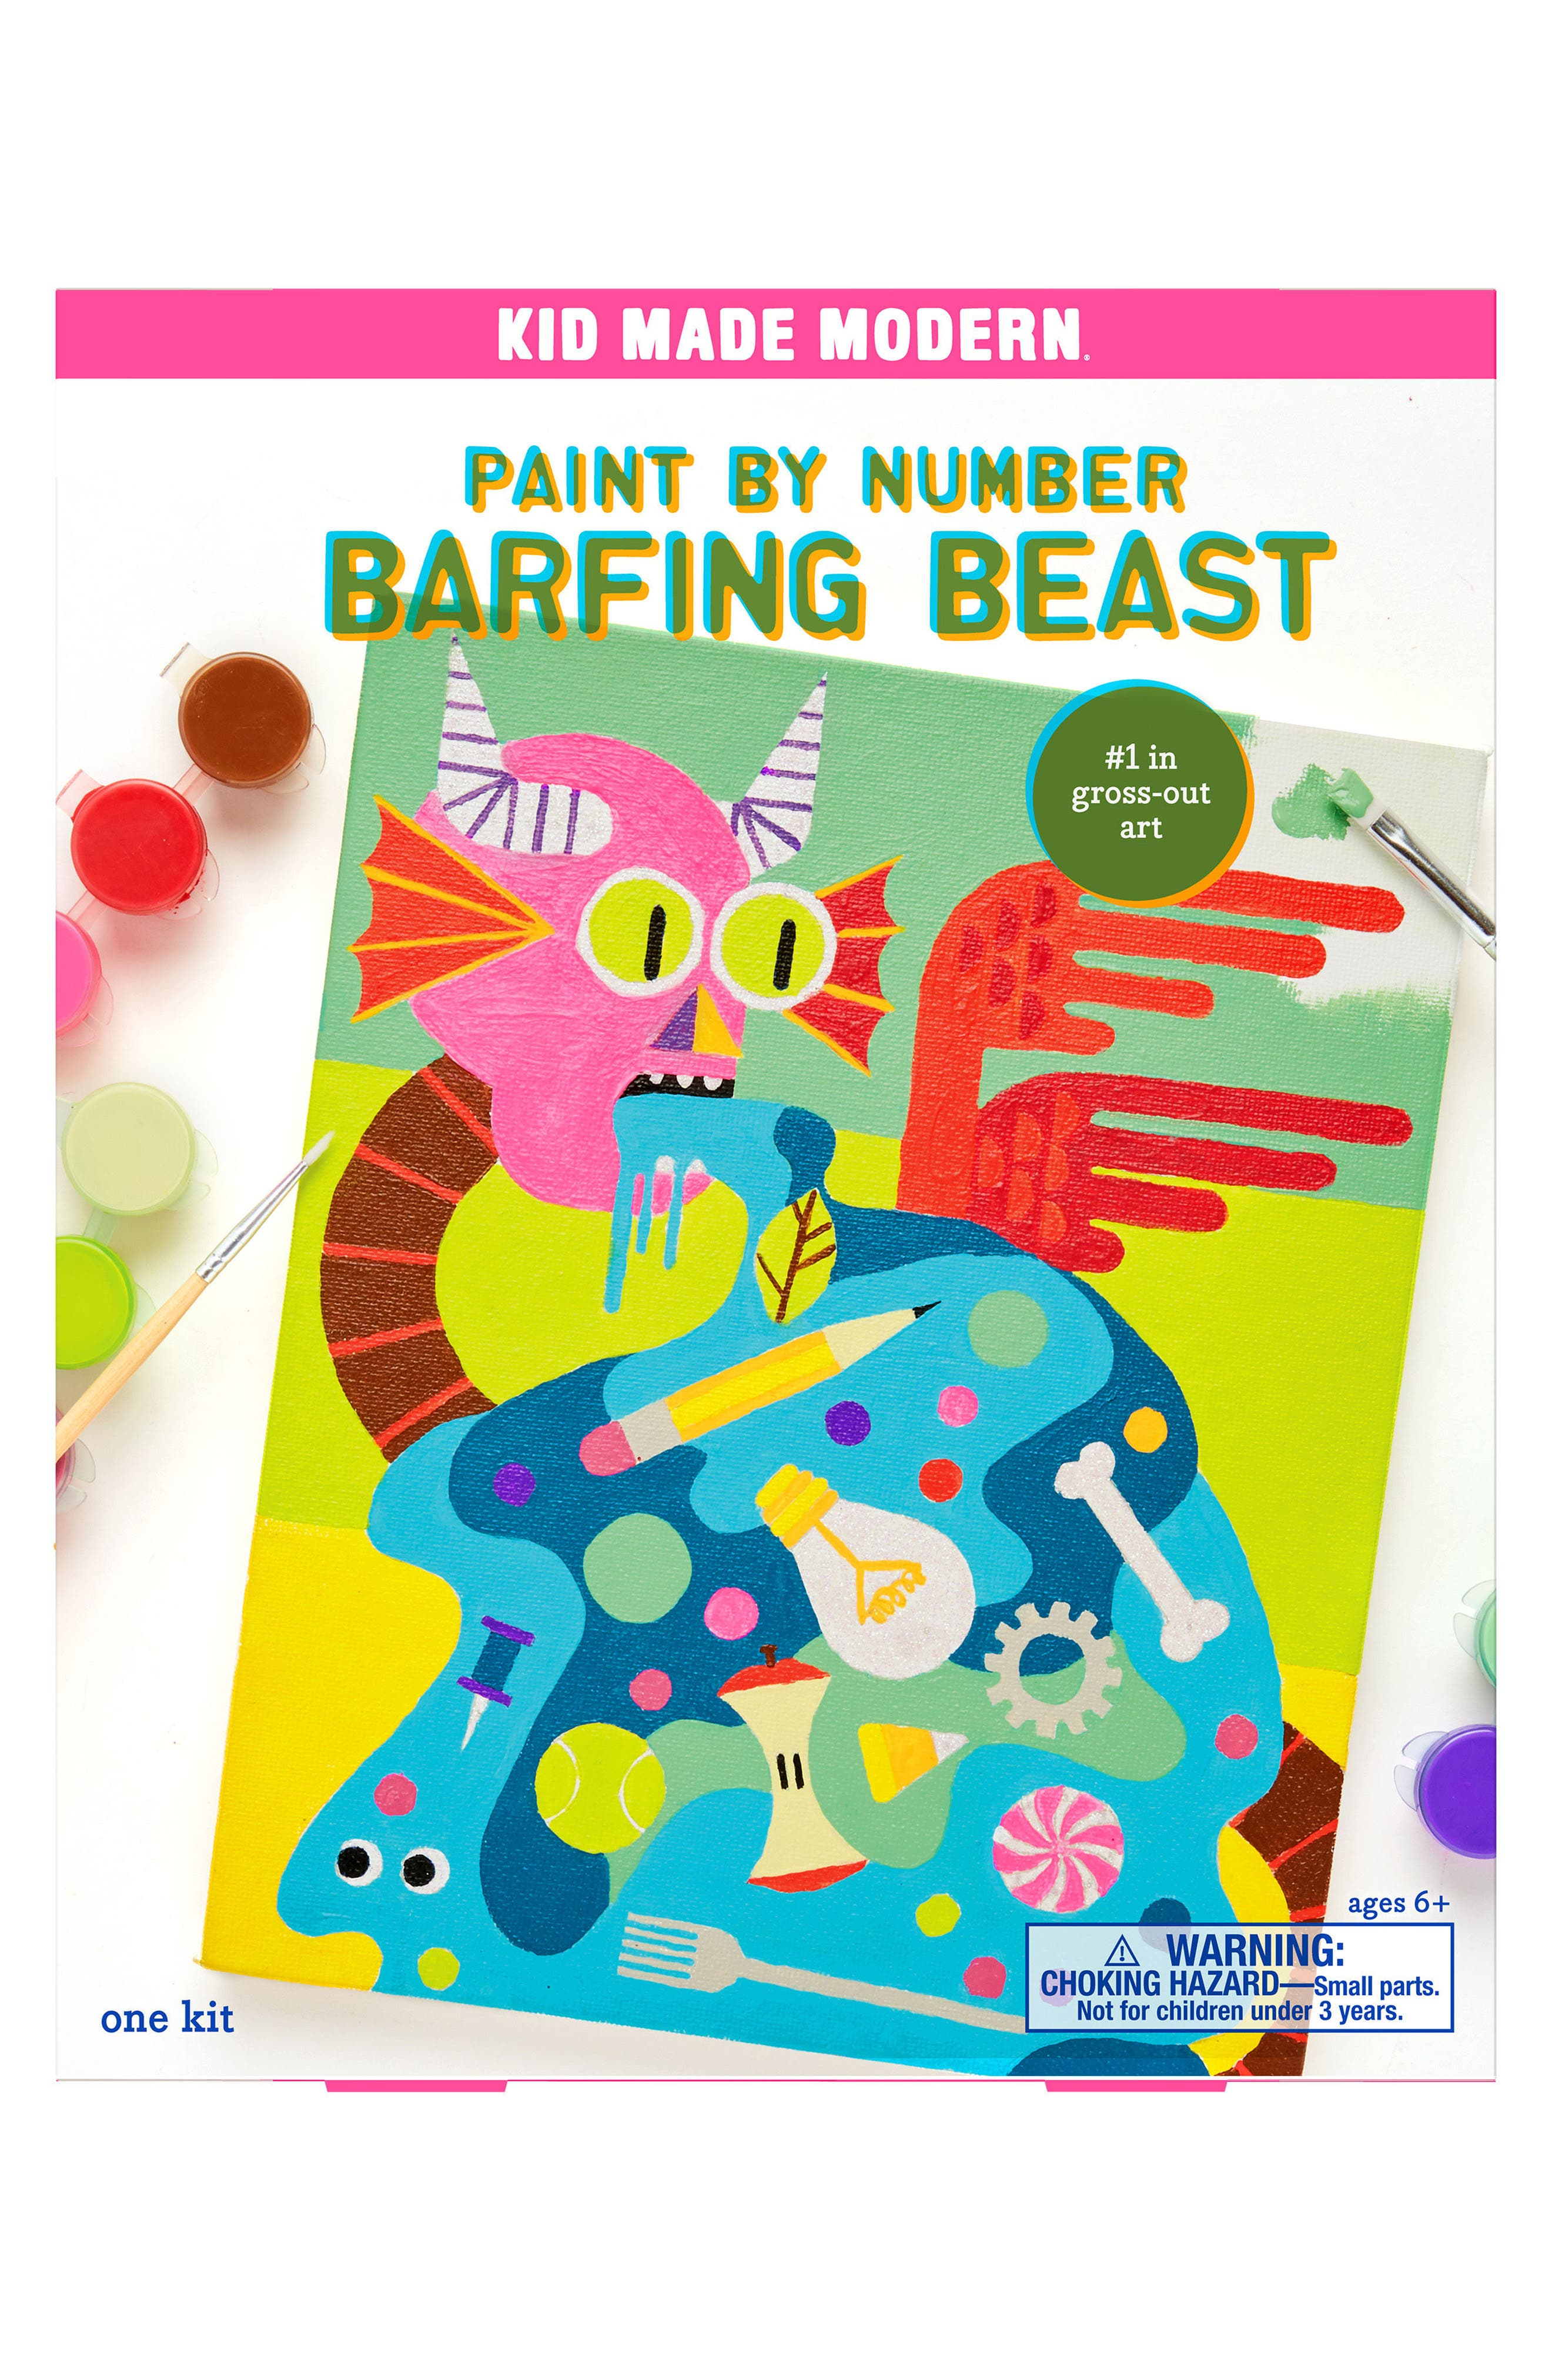 Barfing Beast Paint by Number Kit,                         Main,                         color, 300